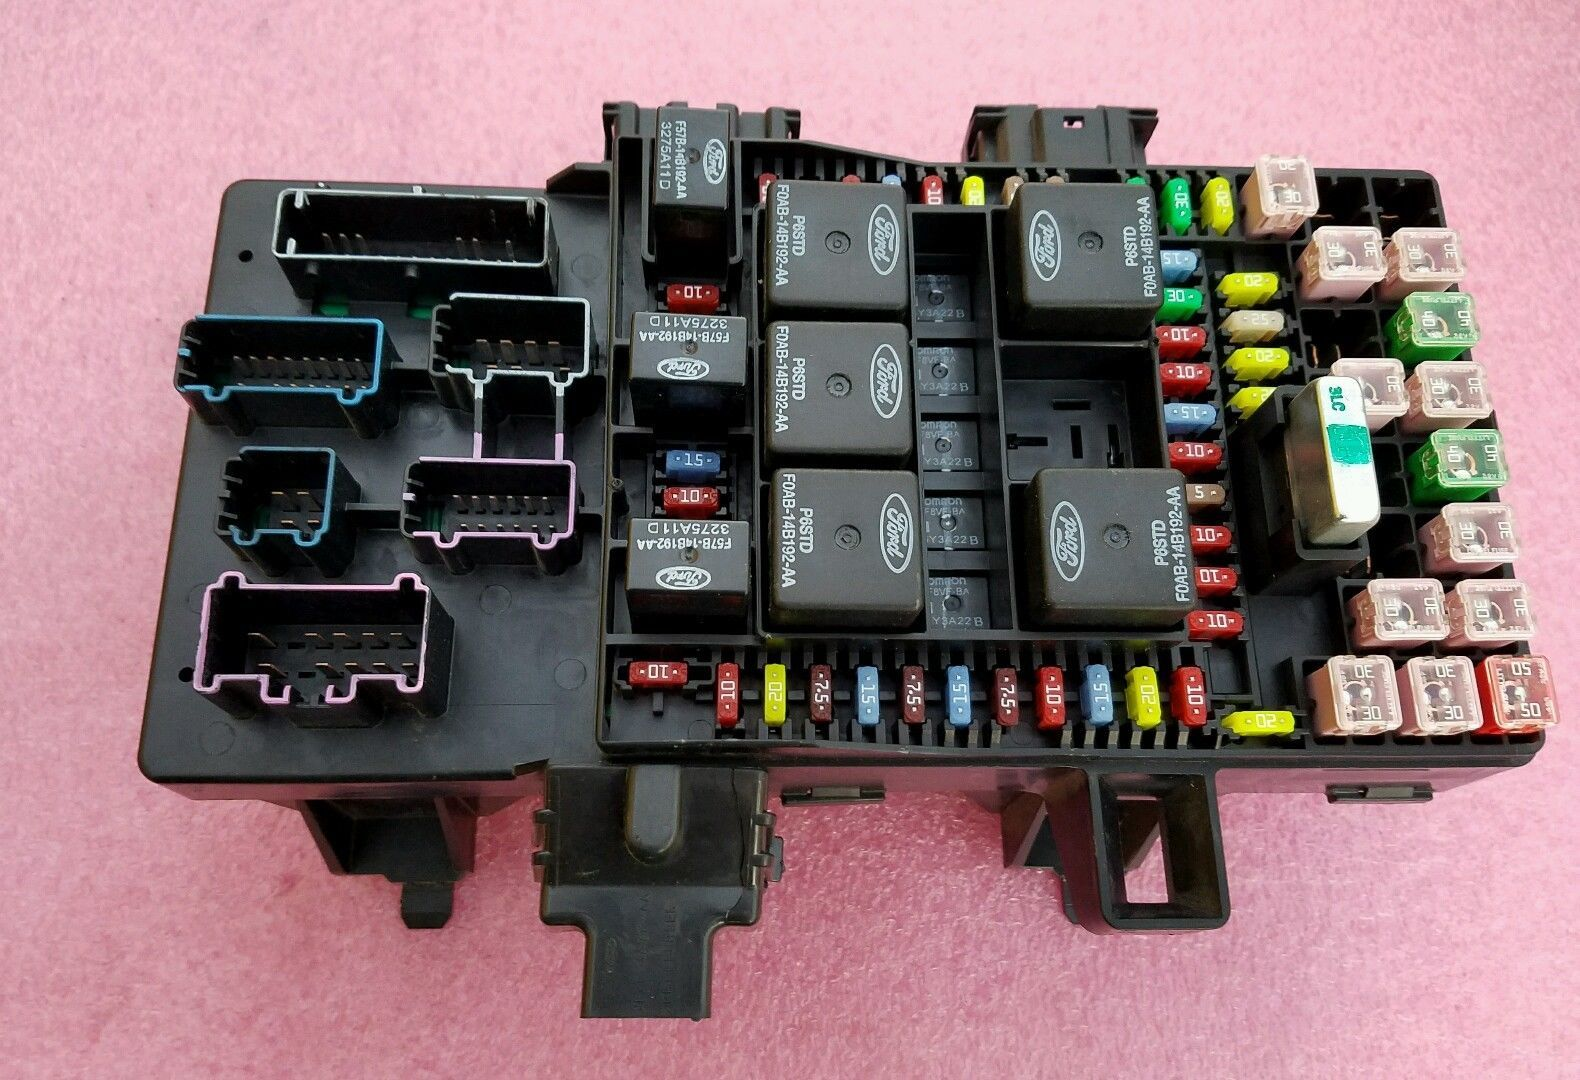 s-l1600  Ford Expedition Fuse Box For Sale on 2005 ford expedition fuse box, 2000 ford crown victoria fuse box, 04 ford expedition fuse box, 2004 ford freestyle fuse box, 2012 ford edge fuse box, 2004 ford excursion fuse panel, 2004 ford f650 fuse box, 2004 saab 9-5 fuse box, 2005 ford crown victoria fuse box, 2004 dodge ram 3500 fuse box, 2004 porsche cayenne fuse box, 2004 land rover discovery fuse box, 2004 ford excursion fuse box, 2004 ford crown victoria fuse box, 1995 ford aerostar fuse box, 2004 chevy express fuse box, 2004 toyota celica fuse box, 1998 ford econoline van fuse box, 1997 ford crown victoria fuse box, 2010 ford flex fuse box,